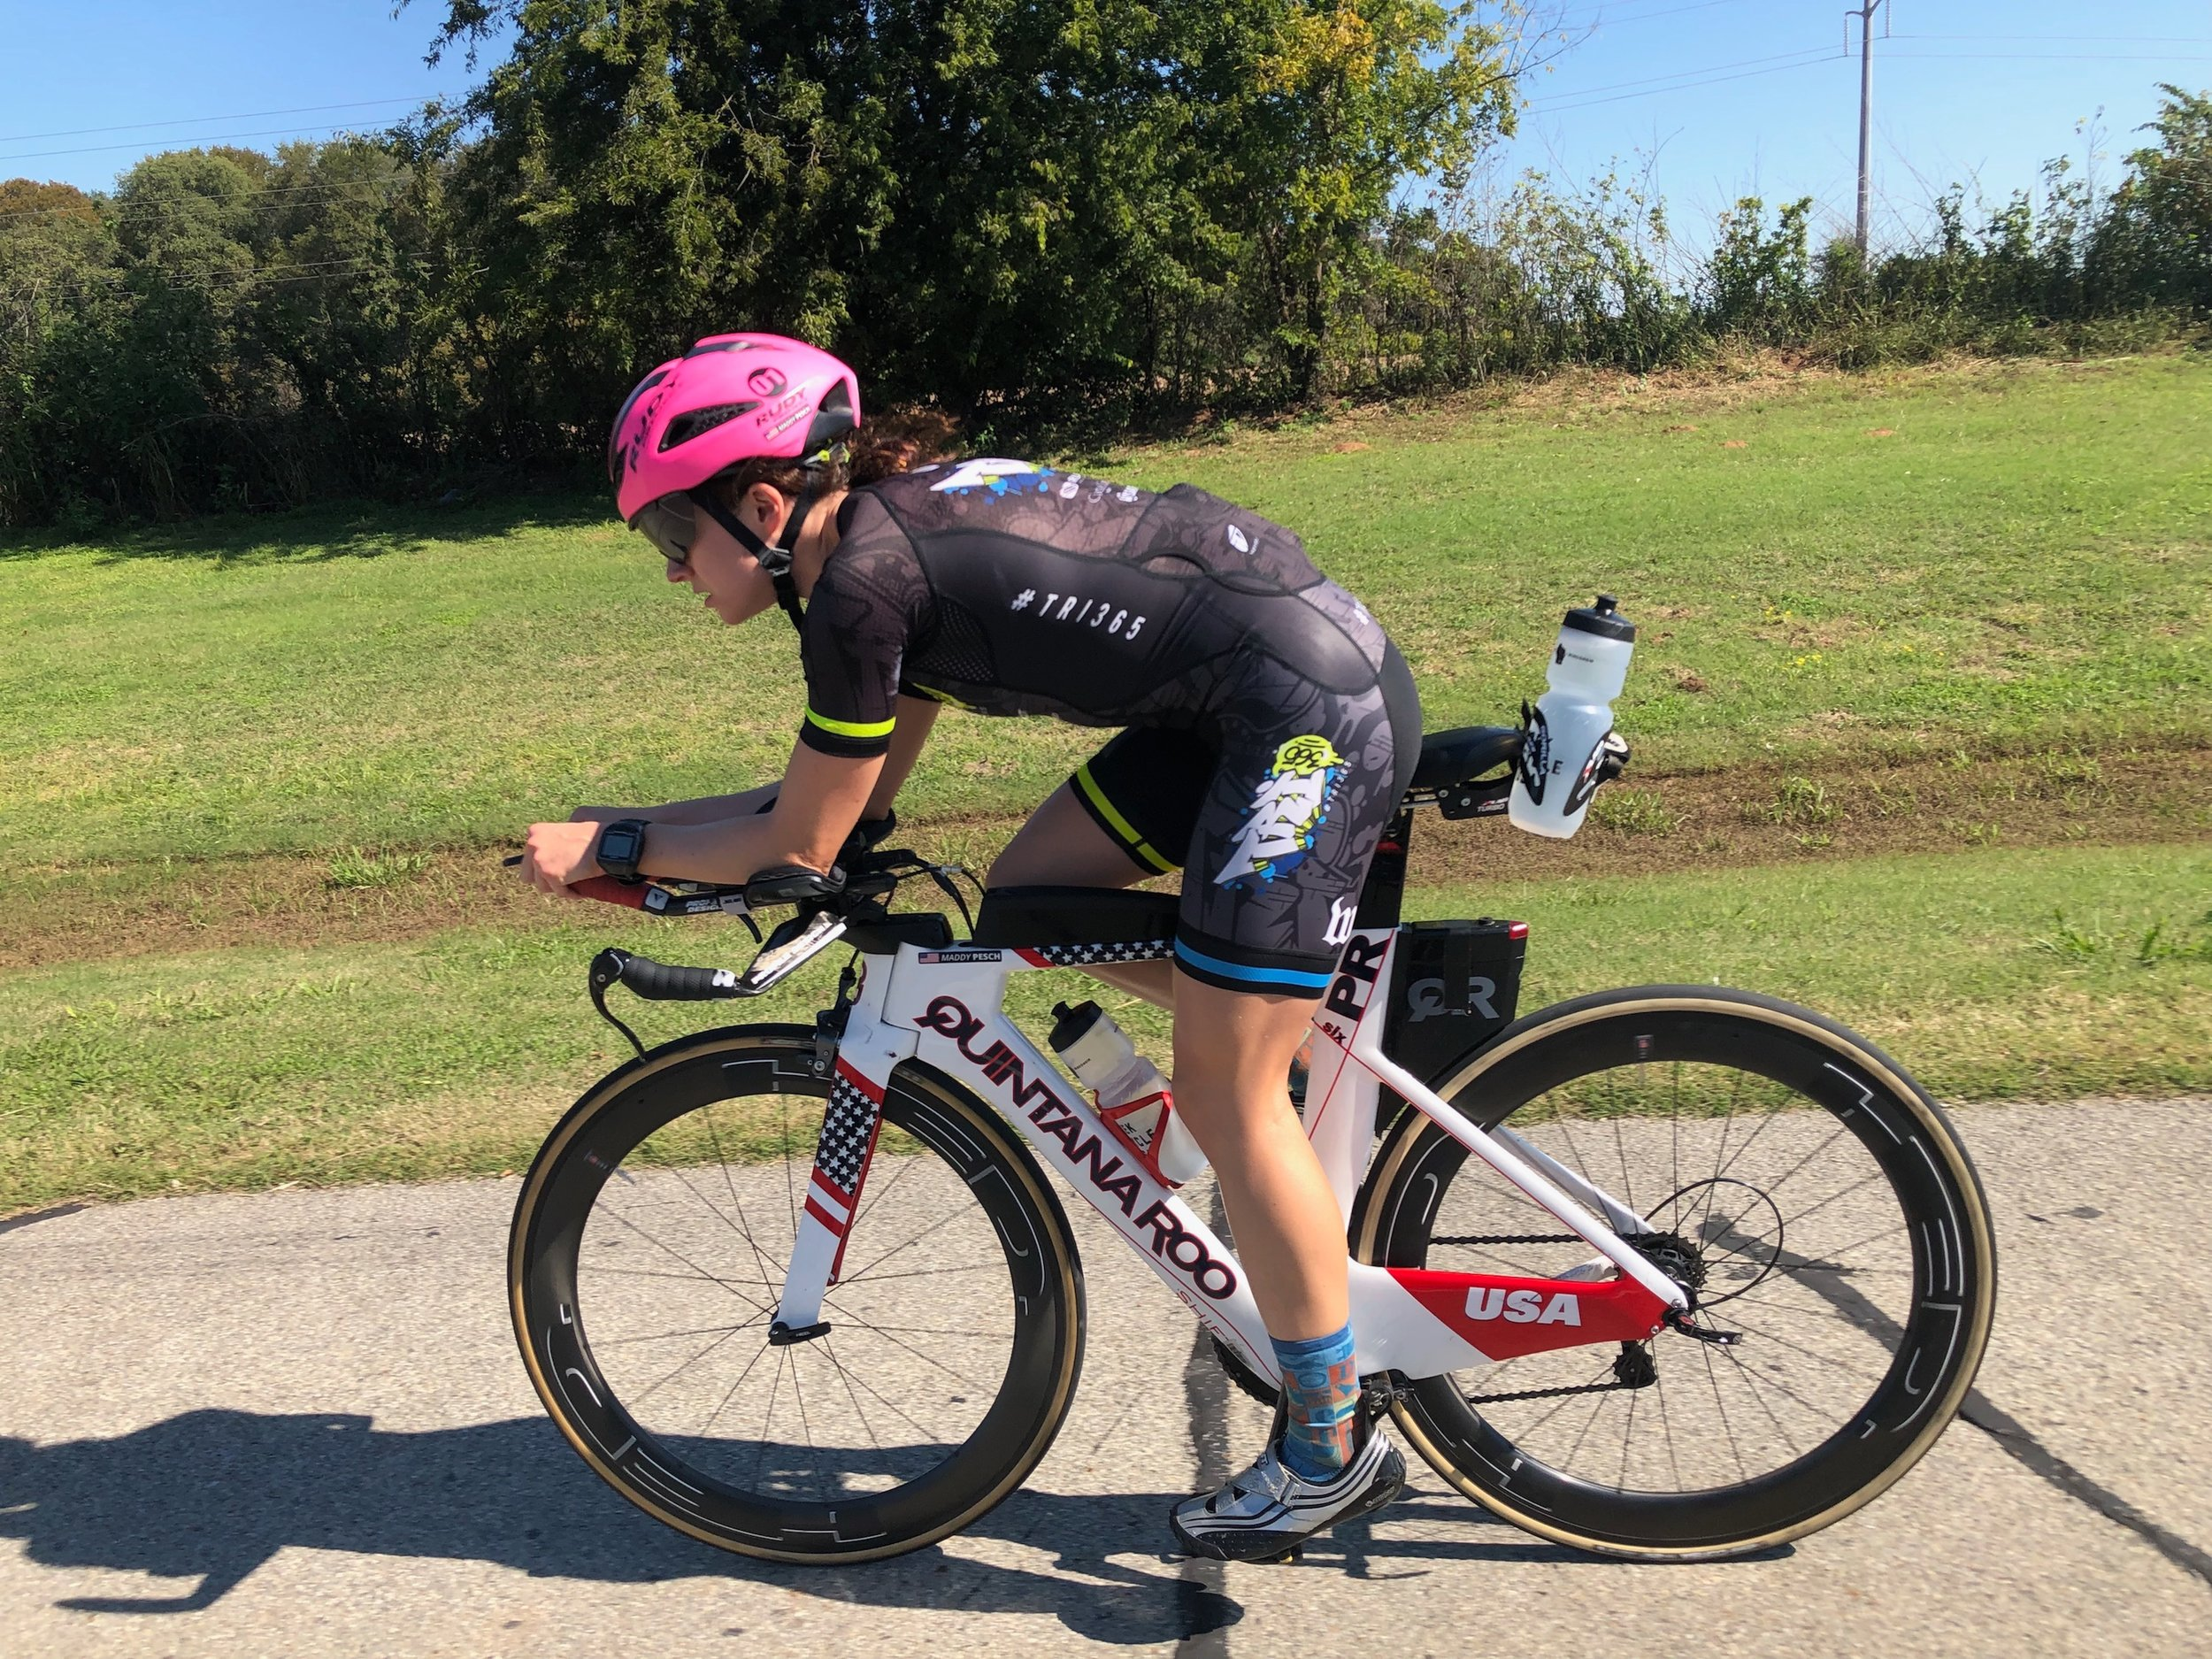 Coach_Terry_Wilson_Pursuit_of_The_Perfect_Race_IRONMAN_70.3_Waco_Maddy_Pesch_PRO.jpg